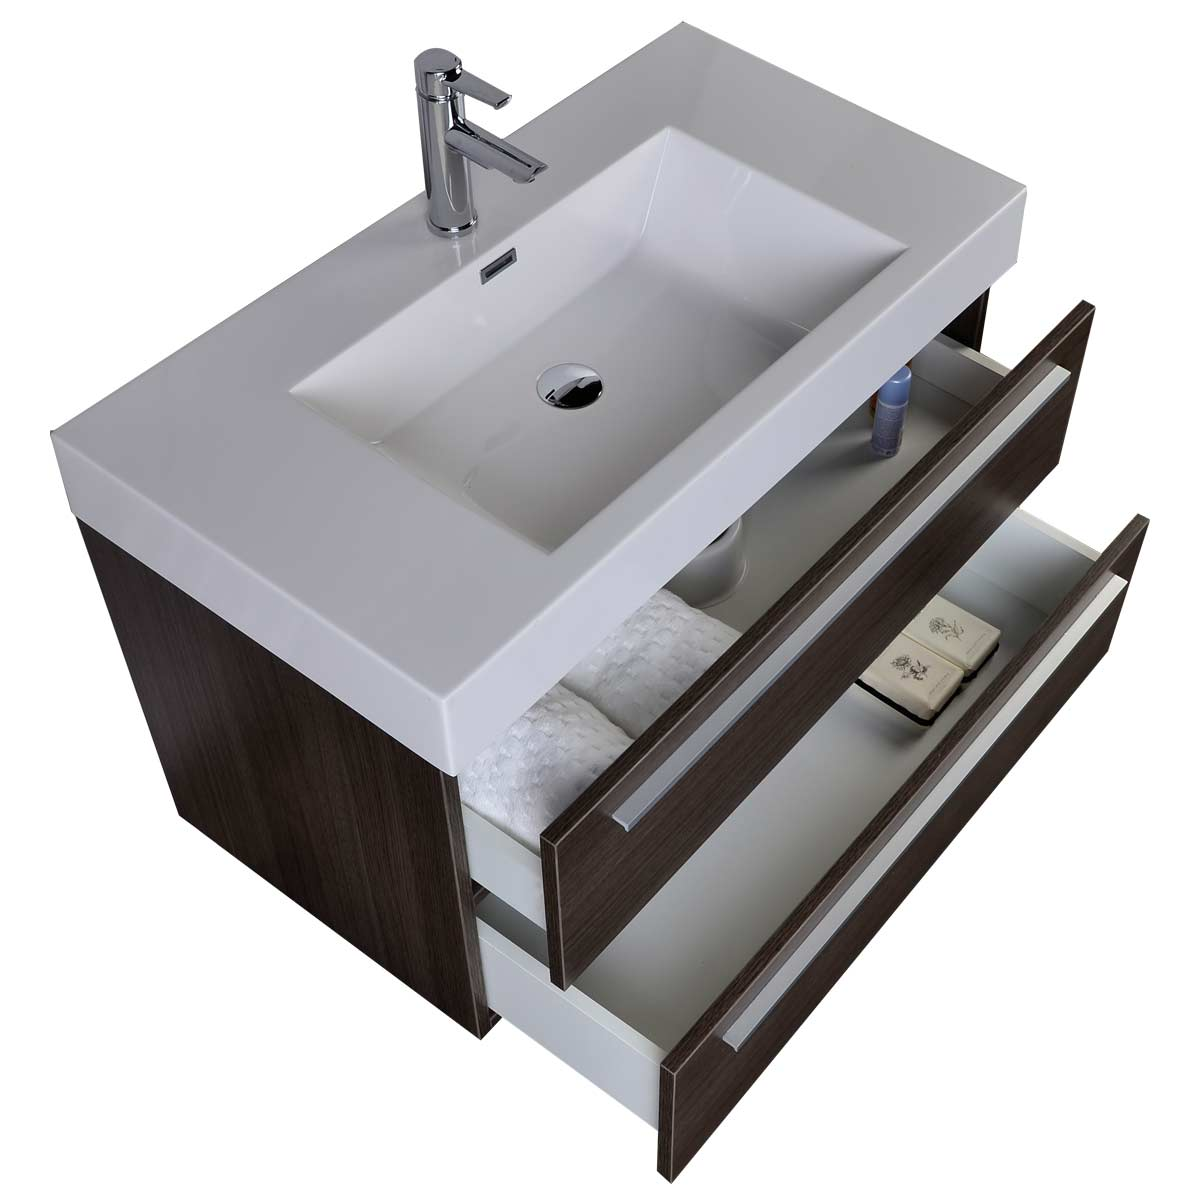 bathroom vanity grey. 35 5  Wall Mount Contemporary Bathroom Vanity in Grey Oak TN M900 GO Modern Free Shipping